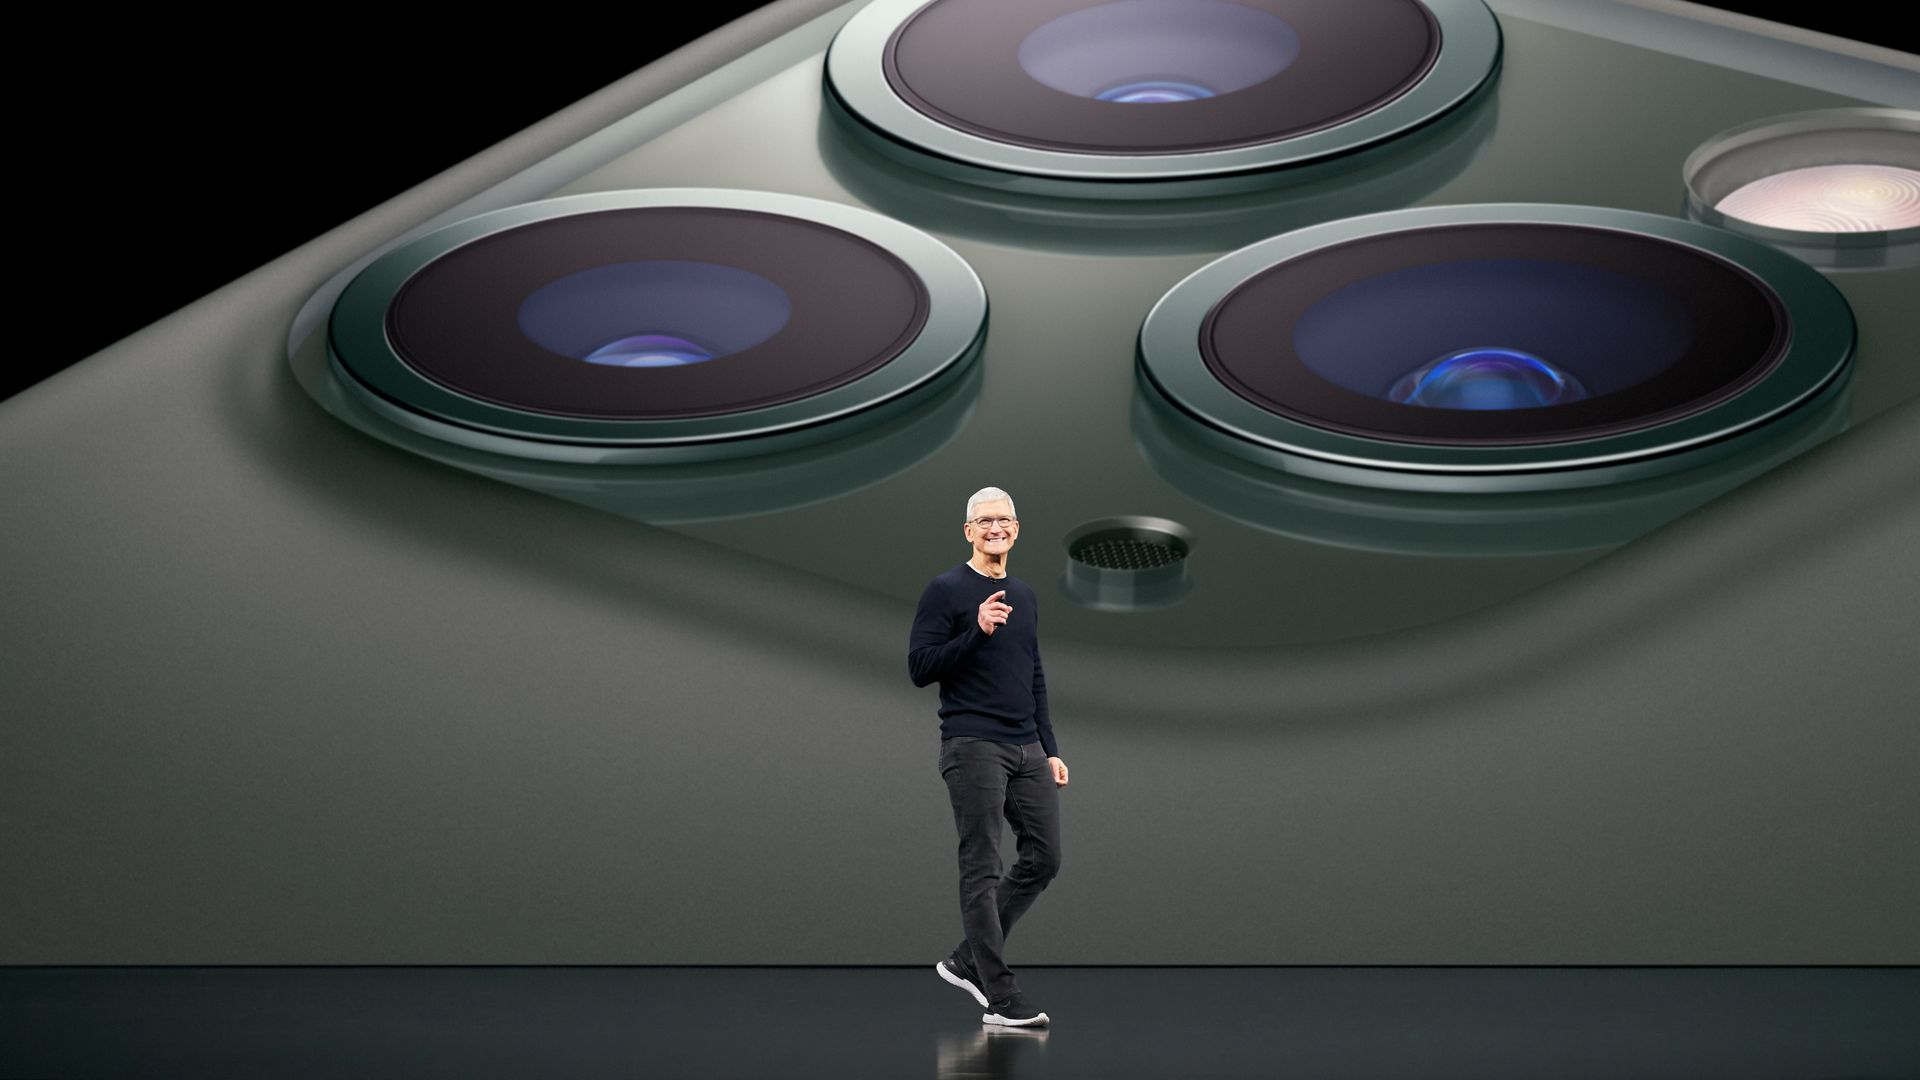 Apple CEO Tim Cook introducing the iPhone 11 Pro